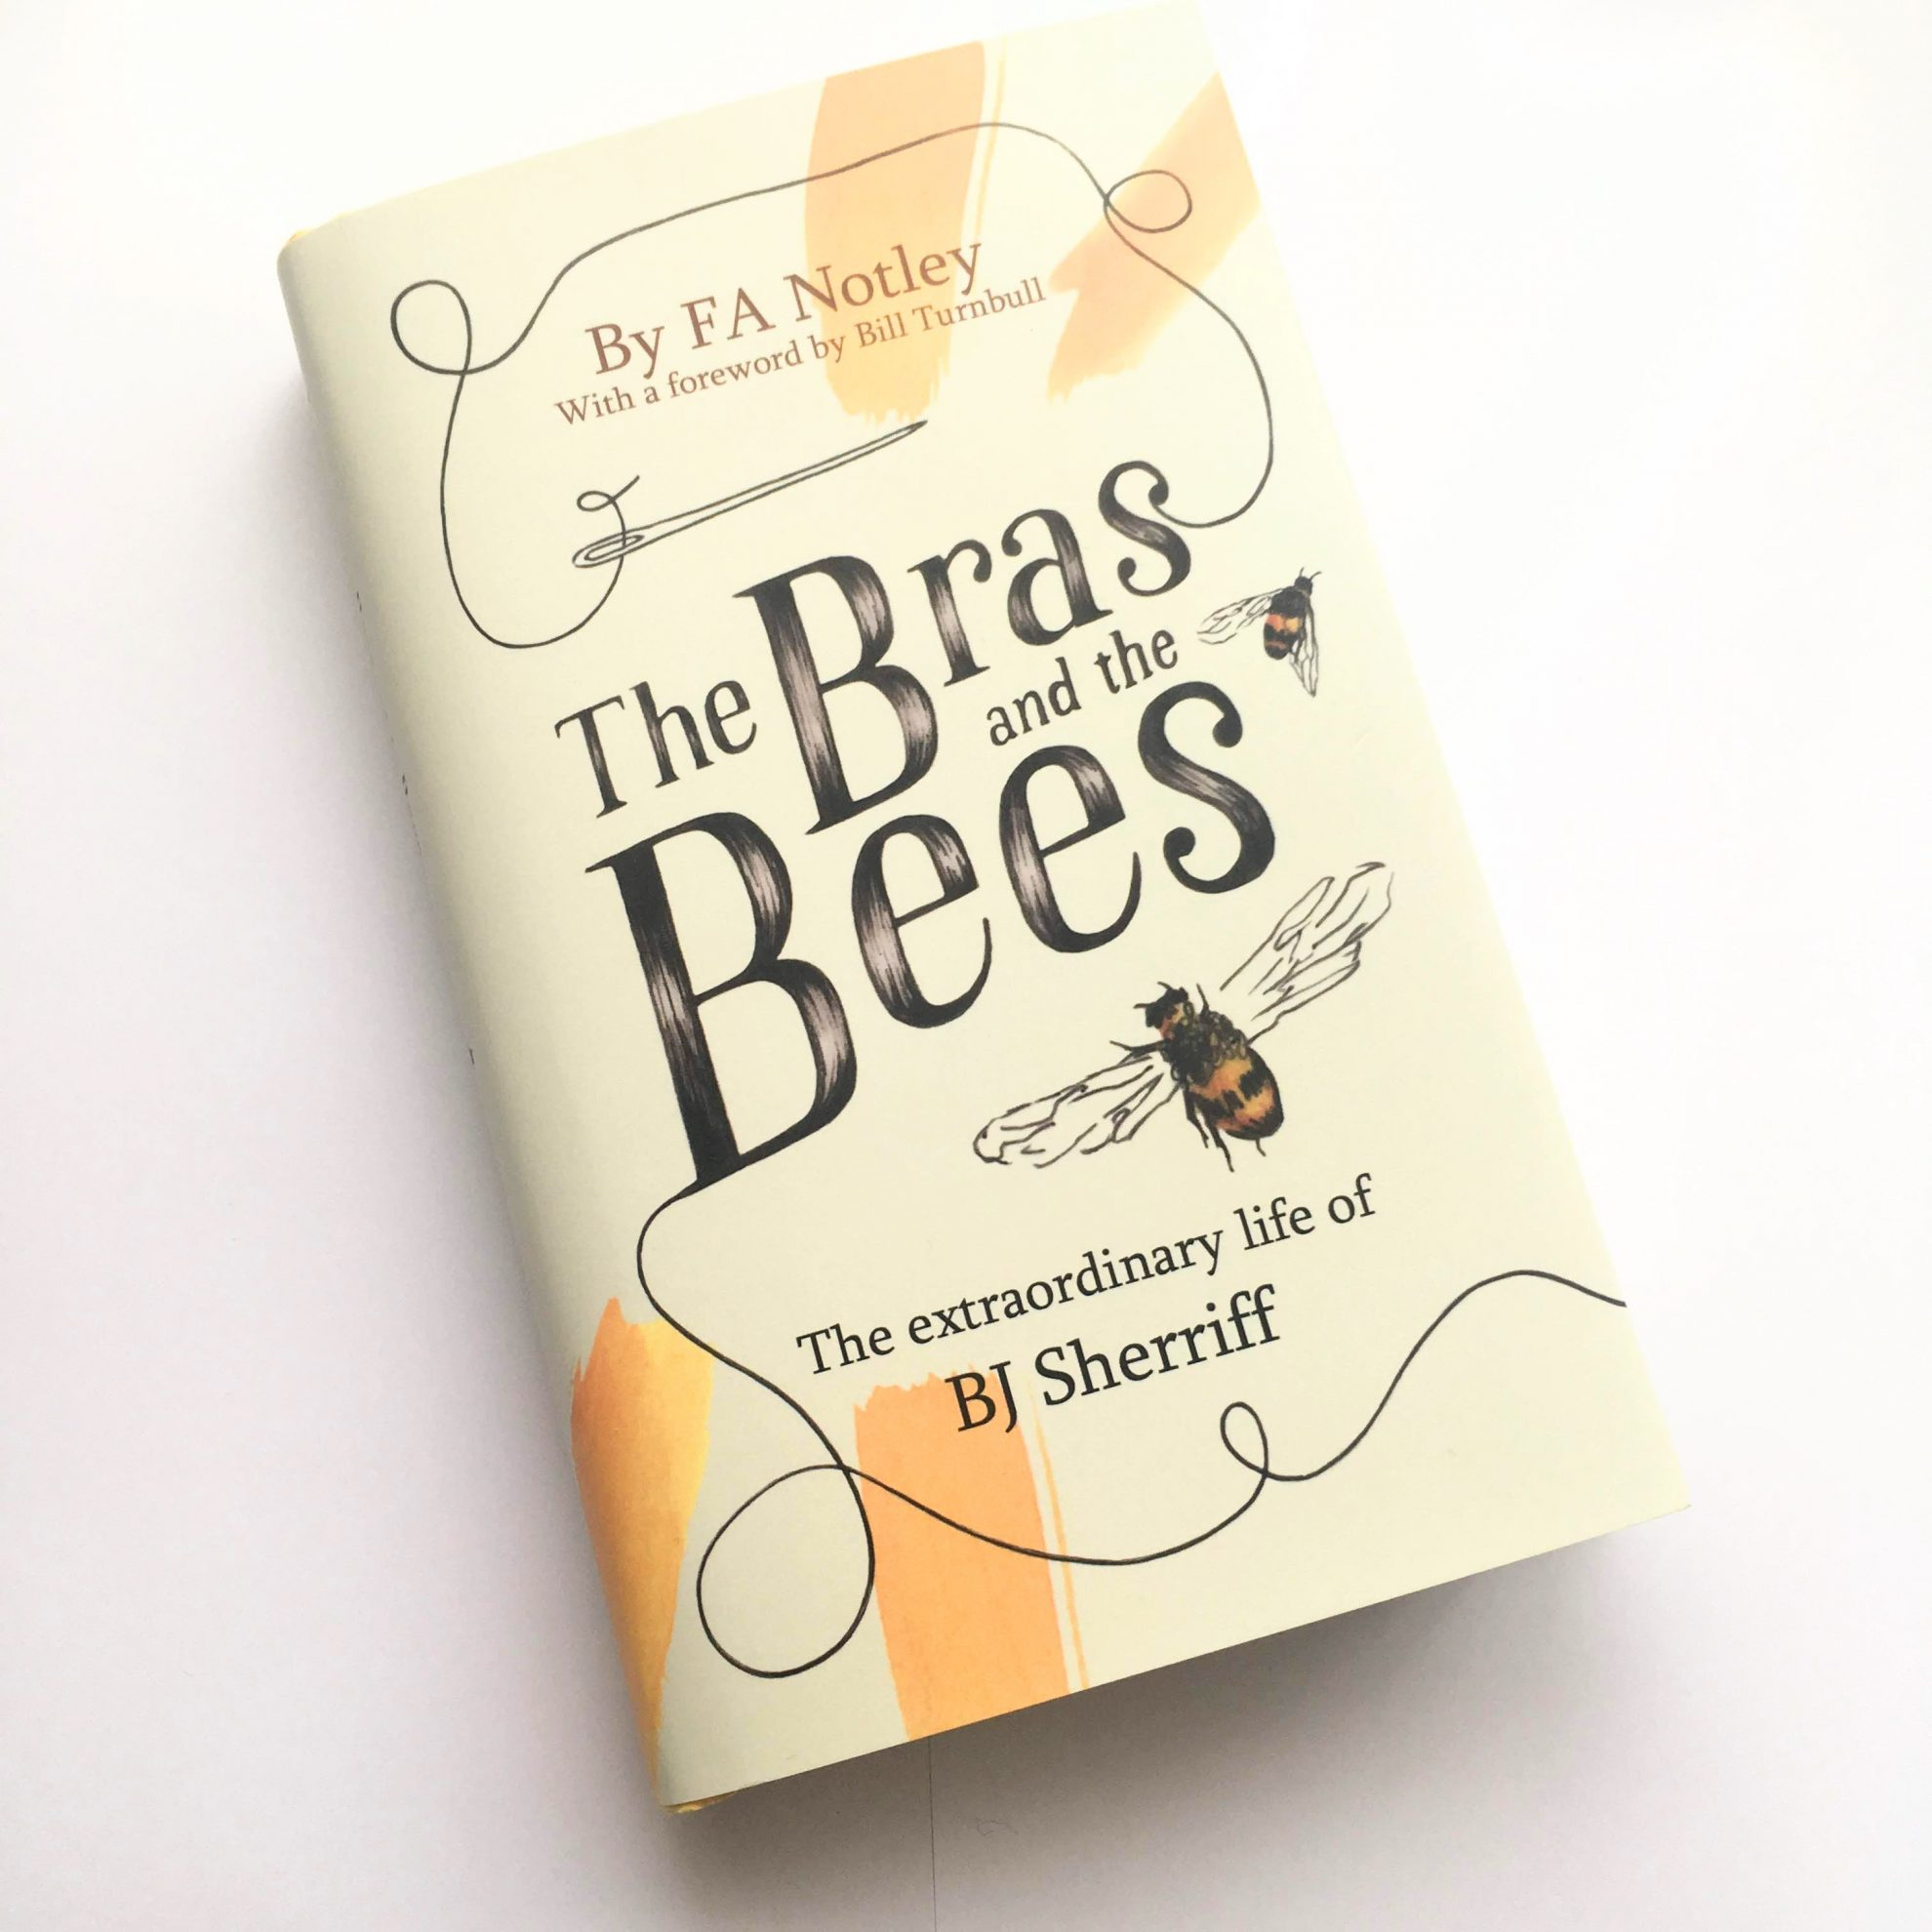 The Bras and the Bees - Winning Book Cover